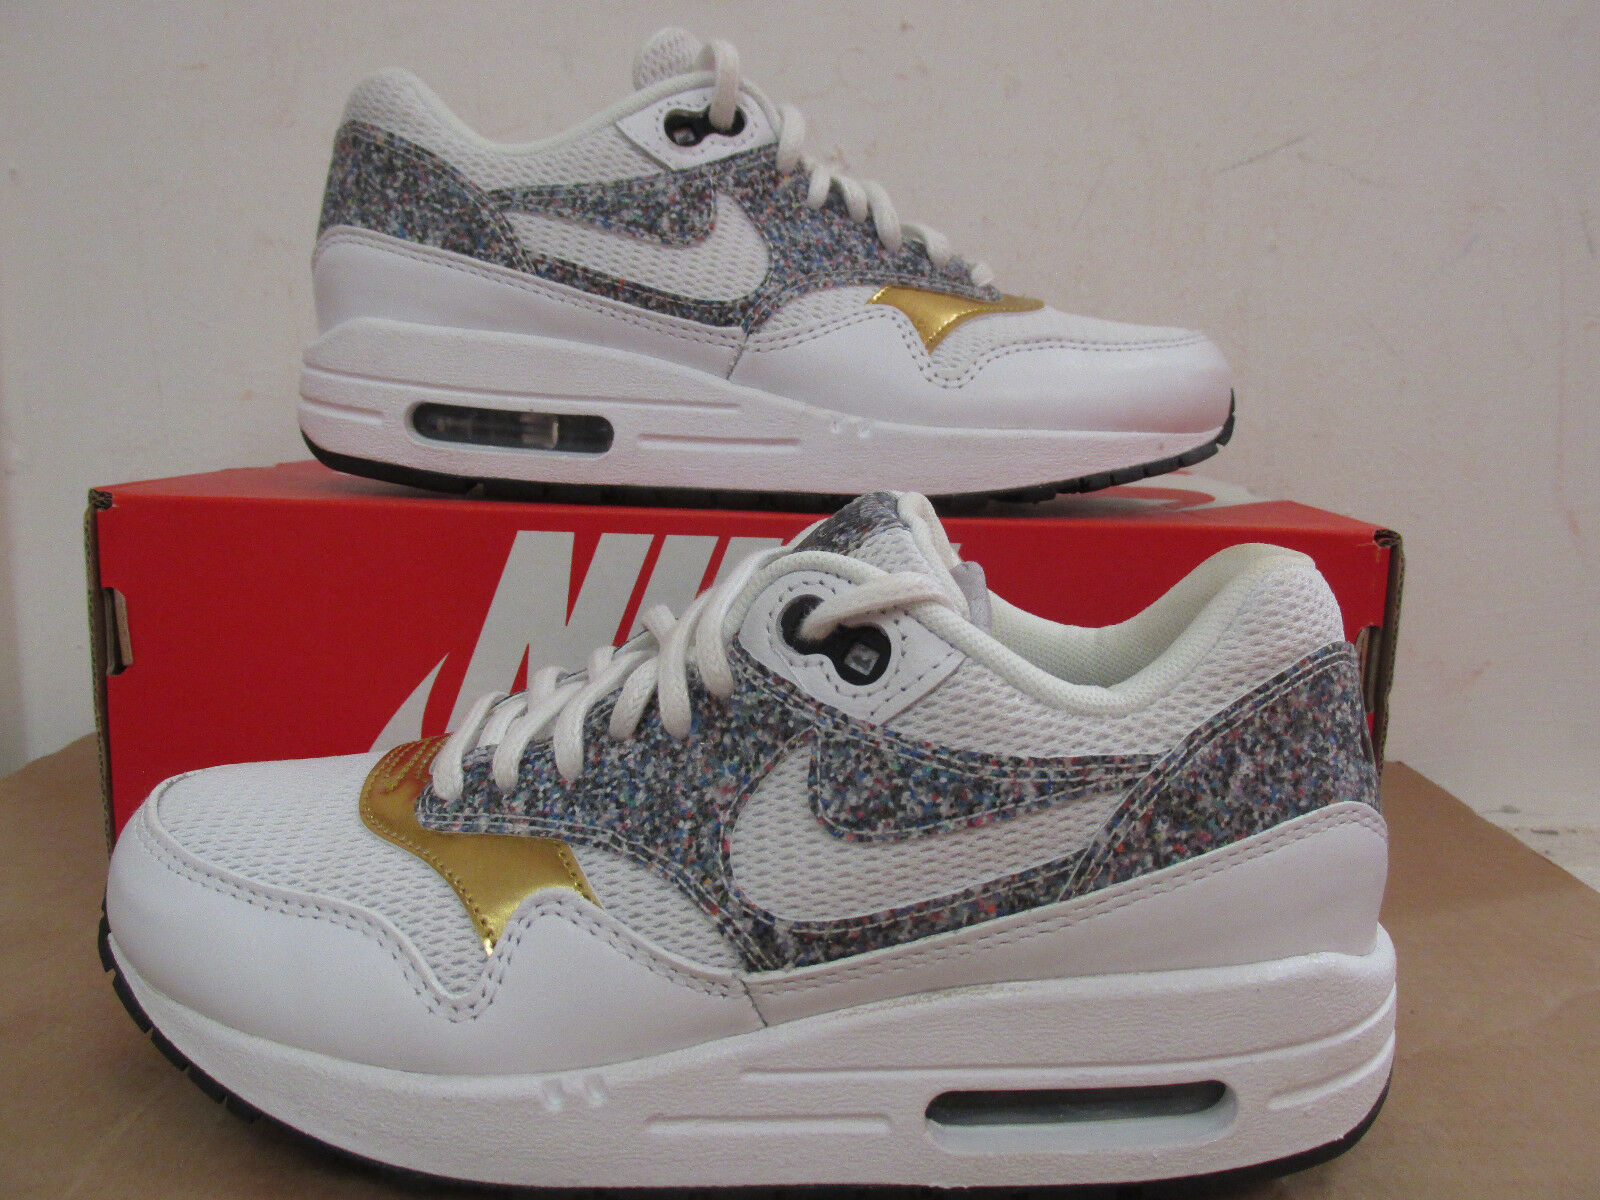 Zapatos promocionales para hombres y mujeres Nike Womens Air Max 1 SE Running Trainers 881101 100 Sneakers Shoes CLEARANCE